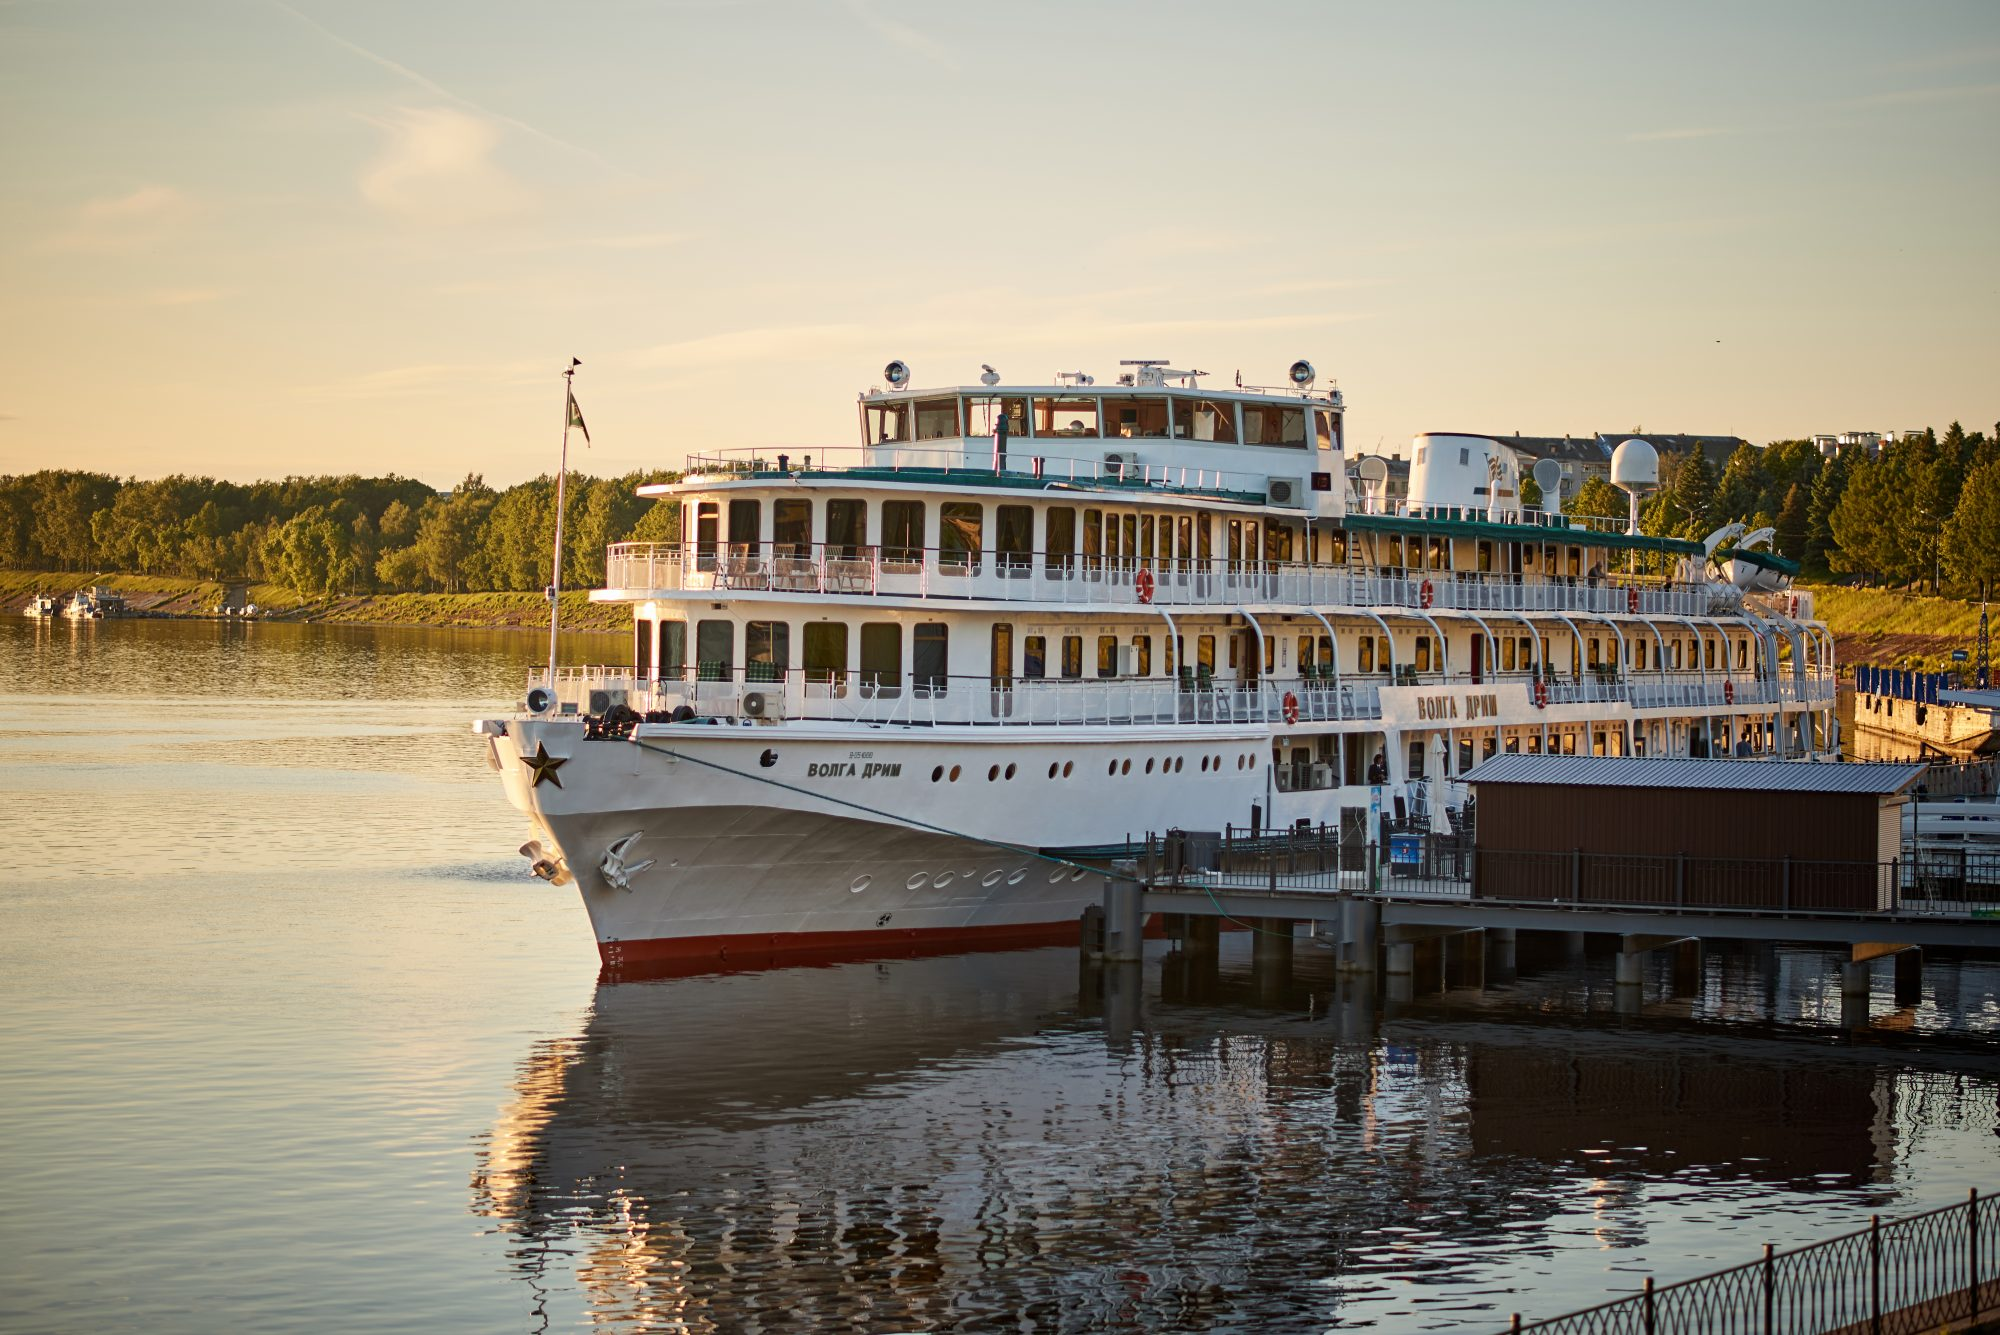 St. Petersburg - a motor ship with increased comfort. A real floating hotel